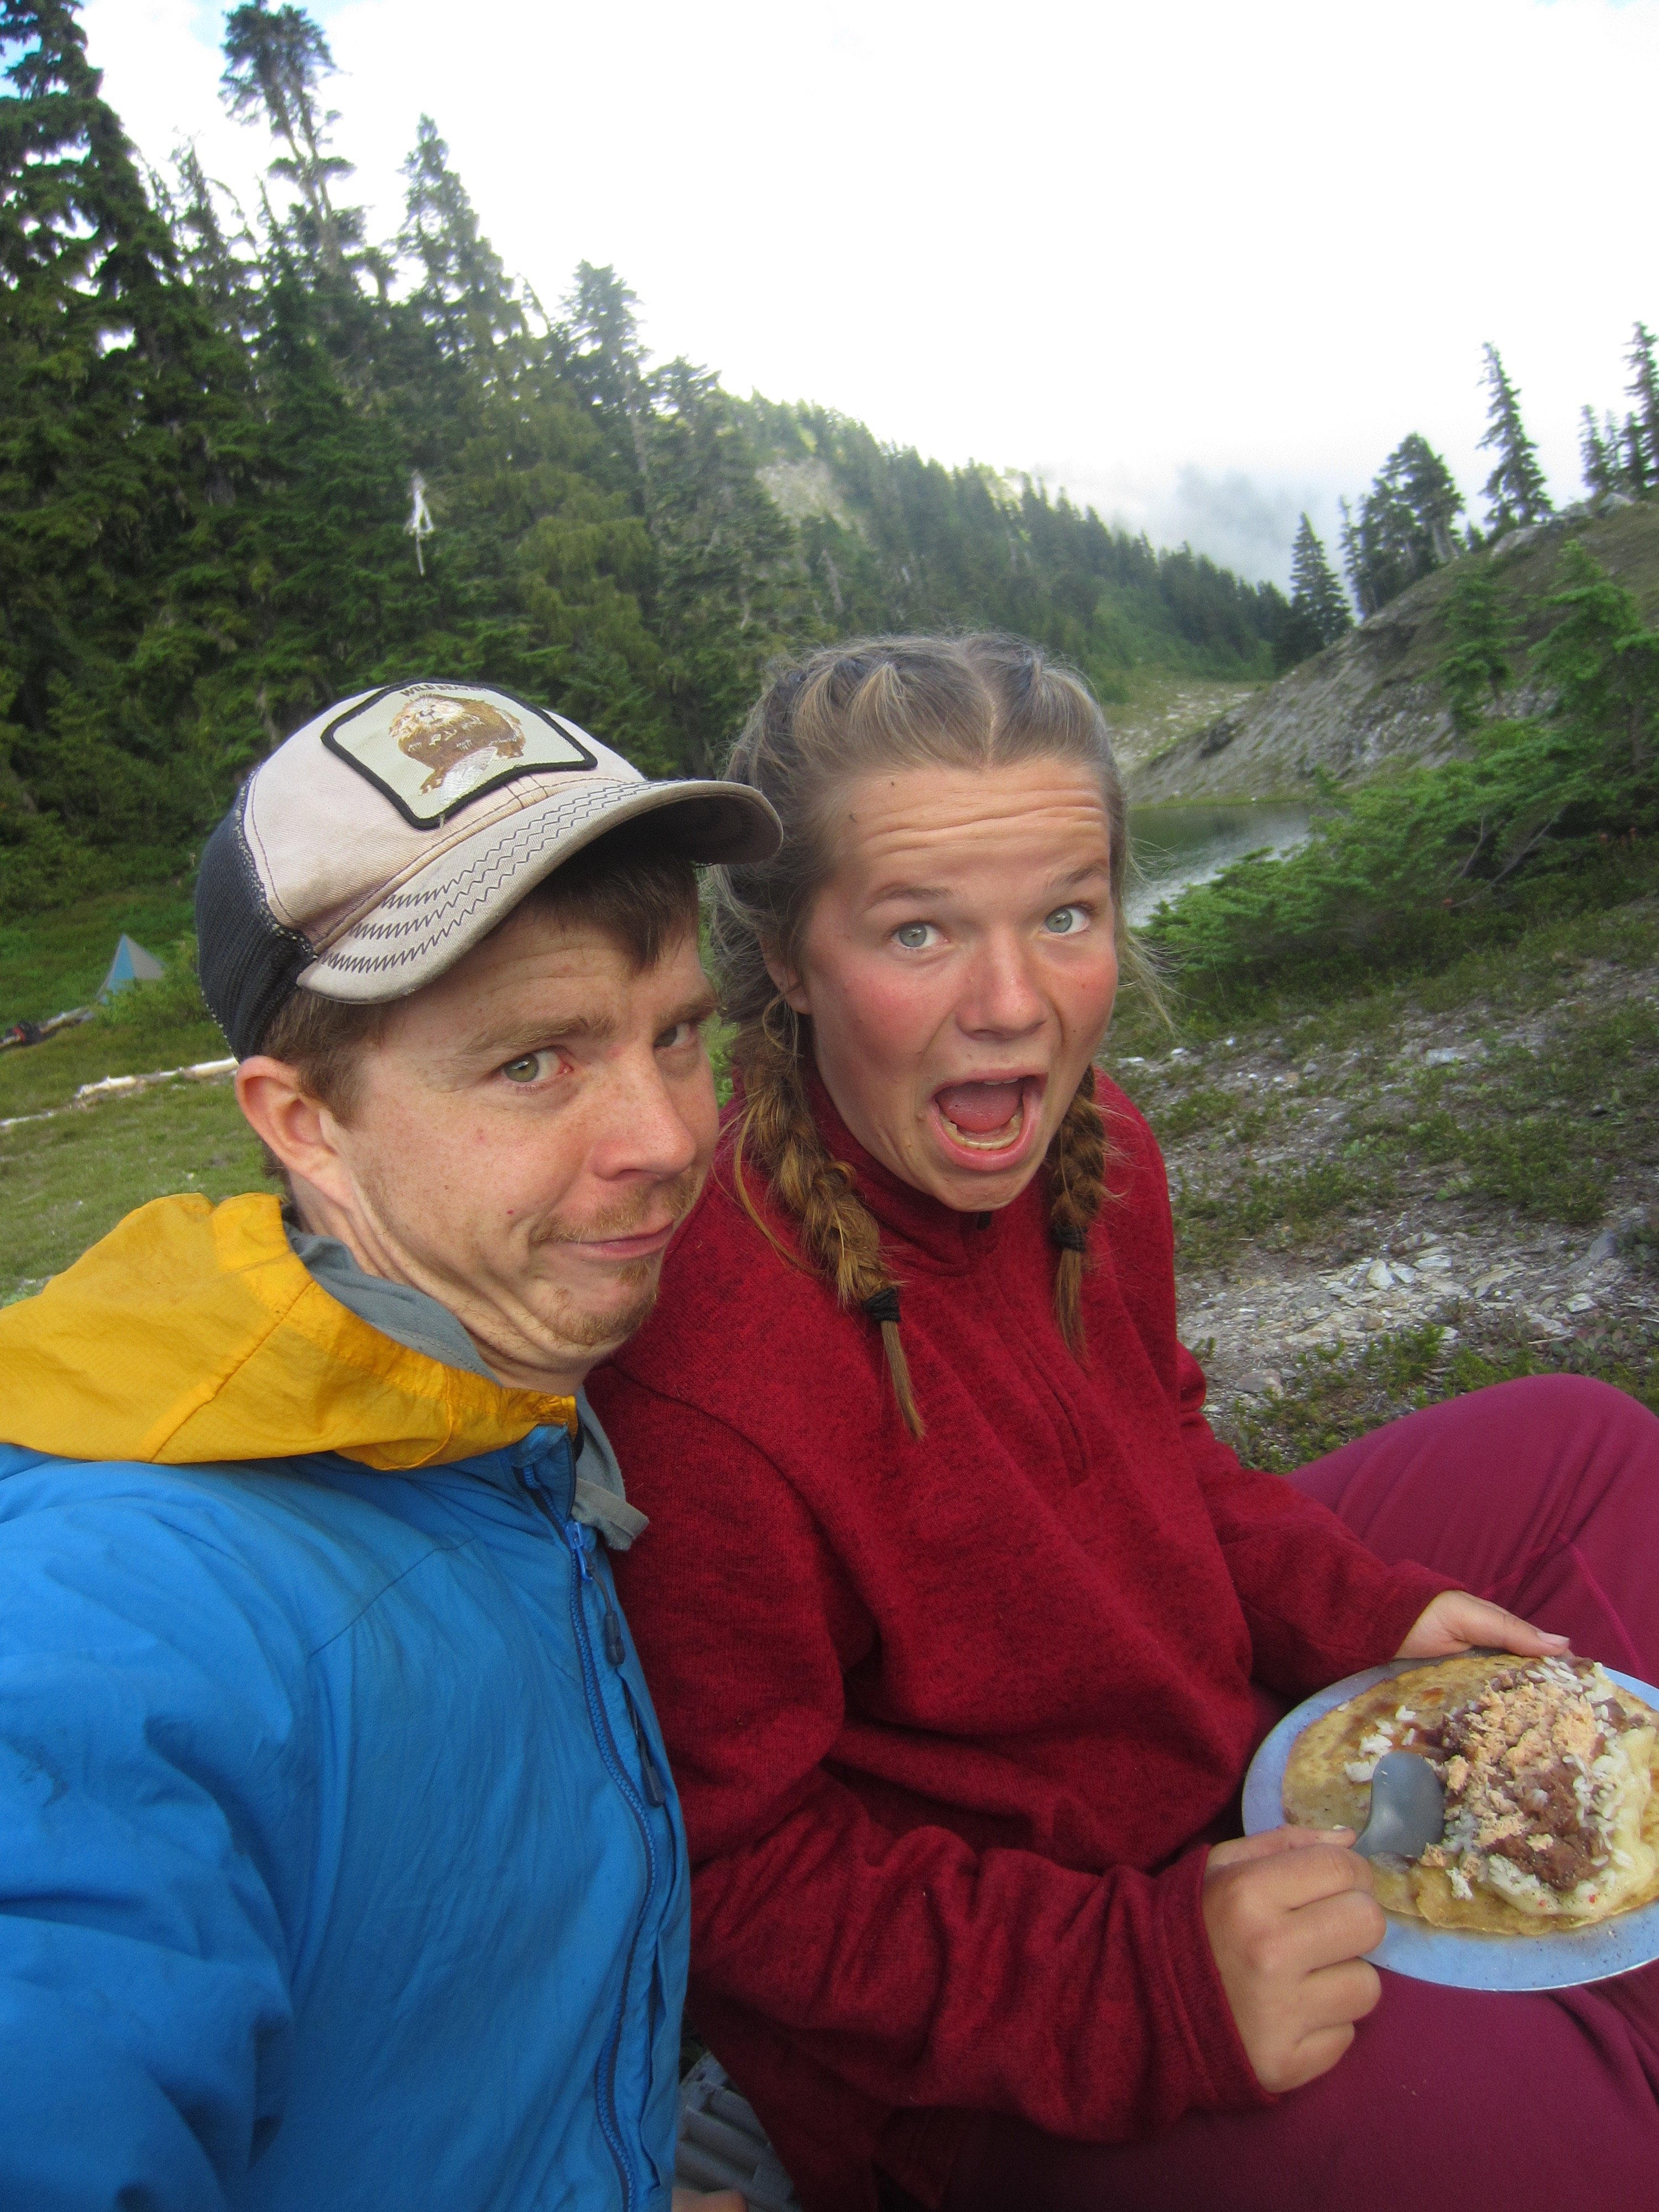 NOLS student and instructor make goofy faces for the camera while eating backcoutry burritos